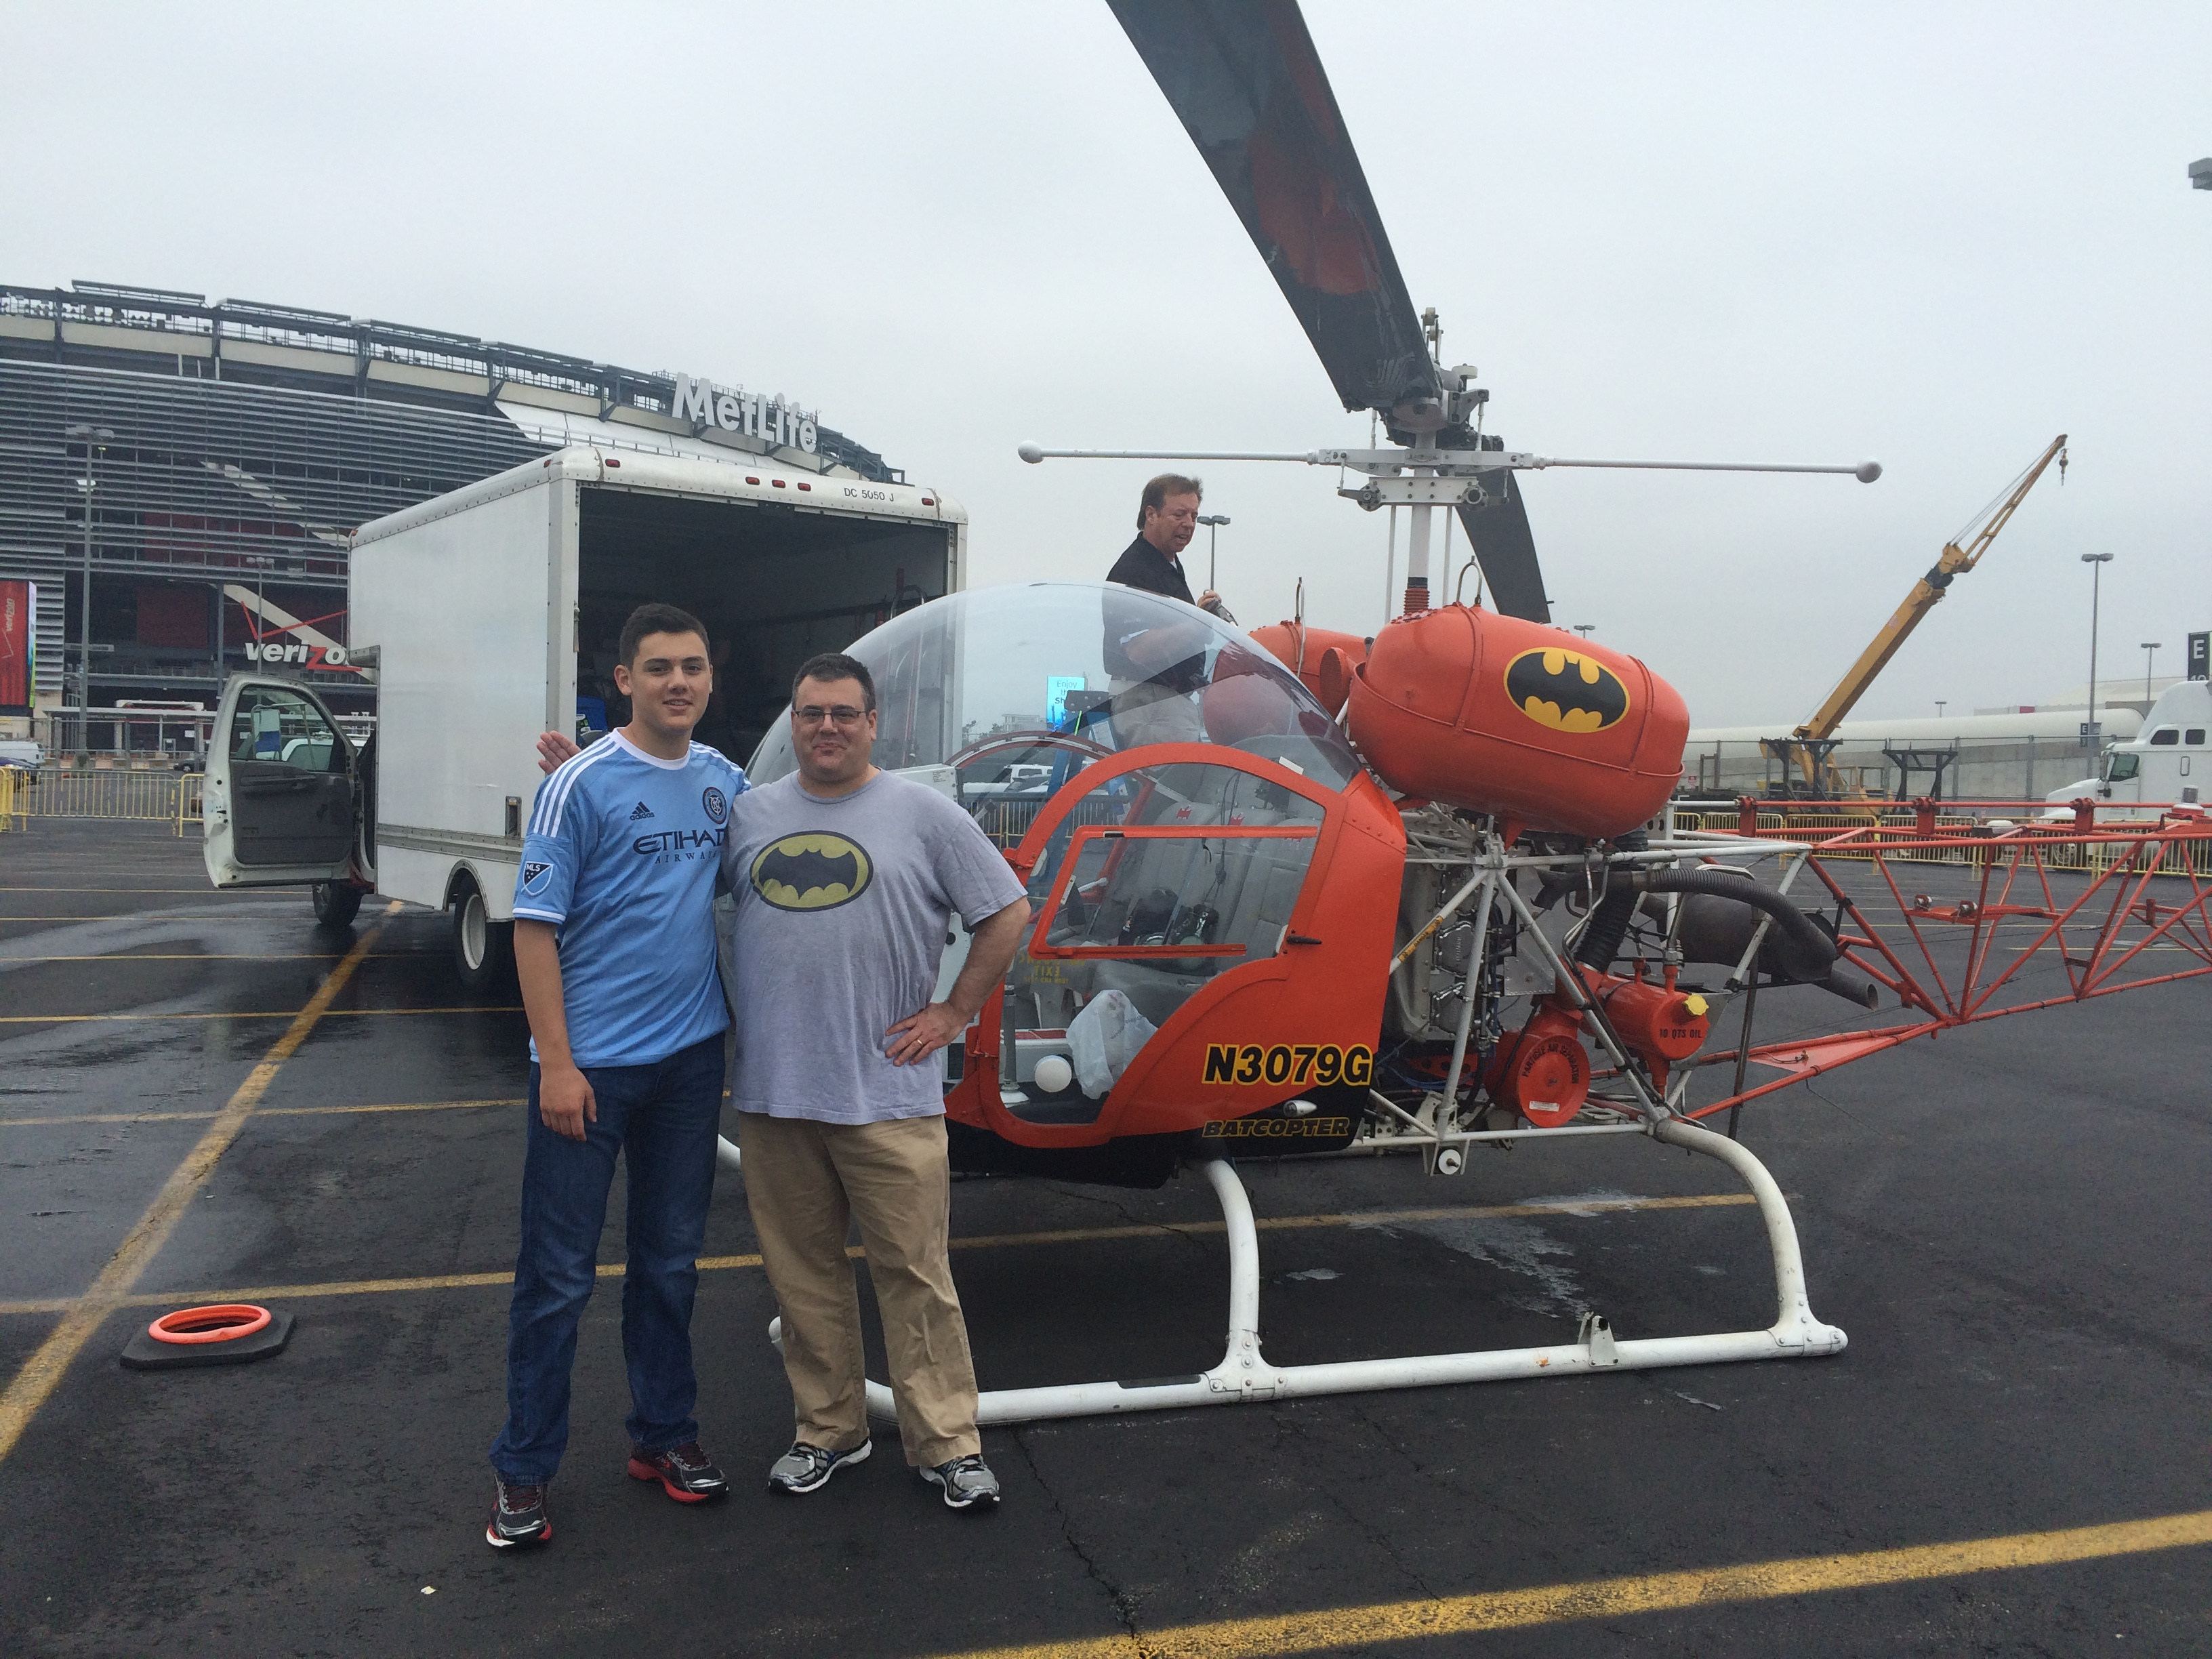 My son Sam, me, and Gene getting the Batcopter ready to fly.